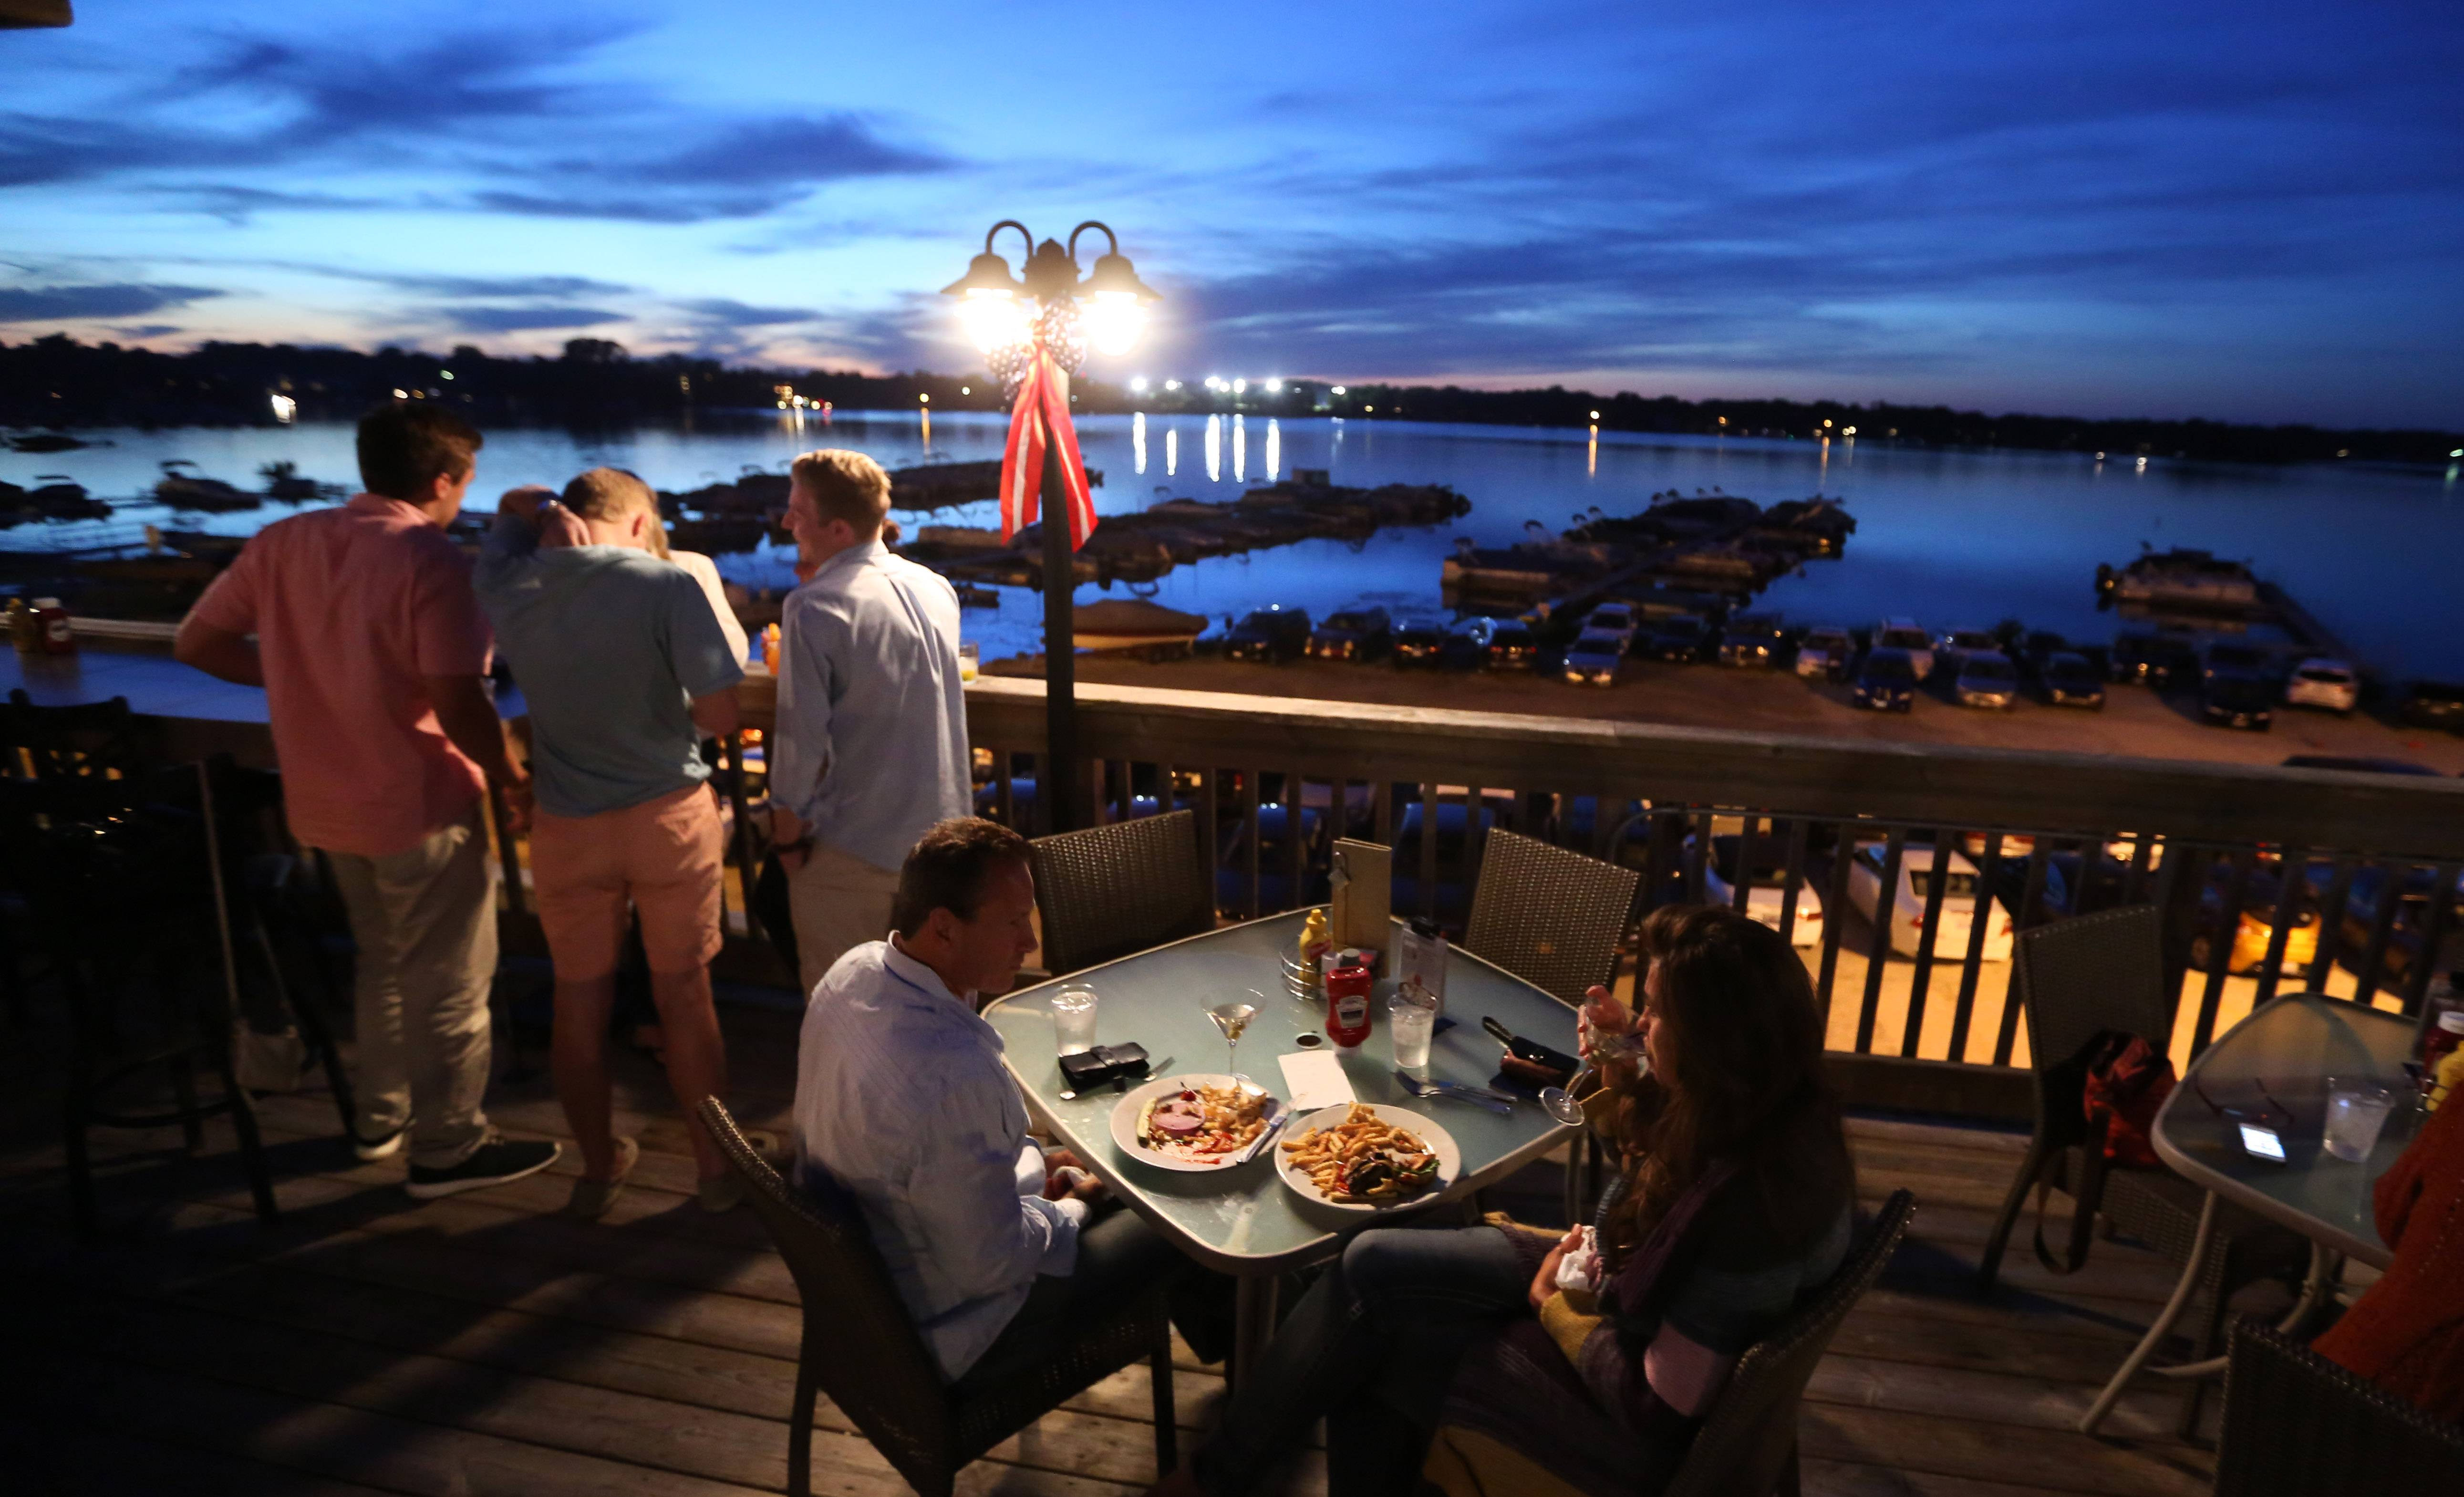 Patrons enjoy the outdoor dining and bar area overlooking Bangs Lake at Docks Bar and Grill in Wauconda.